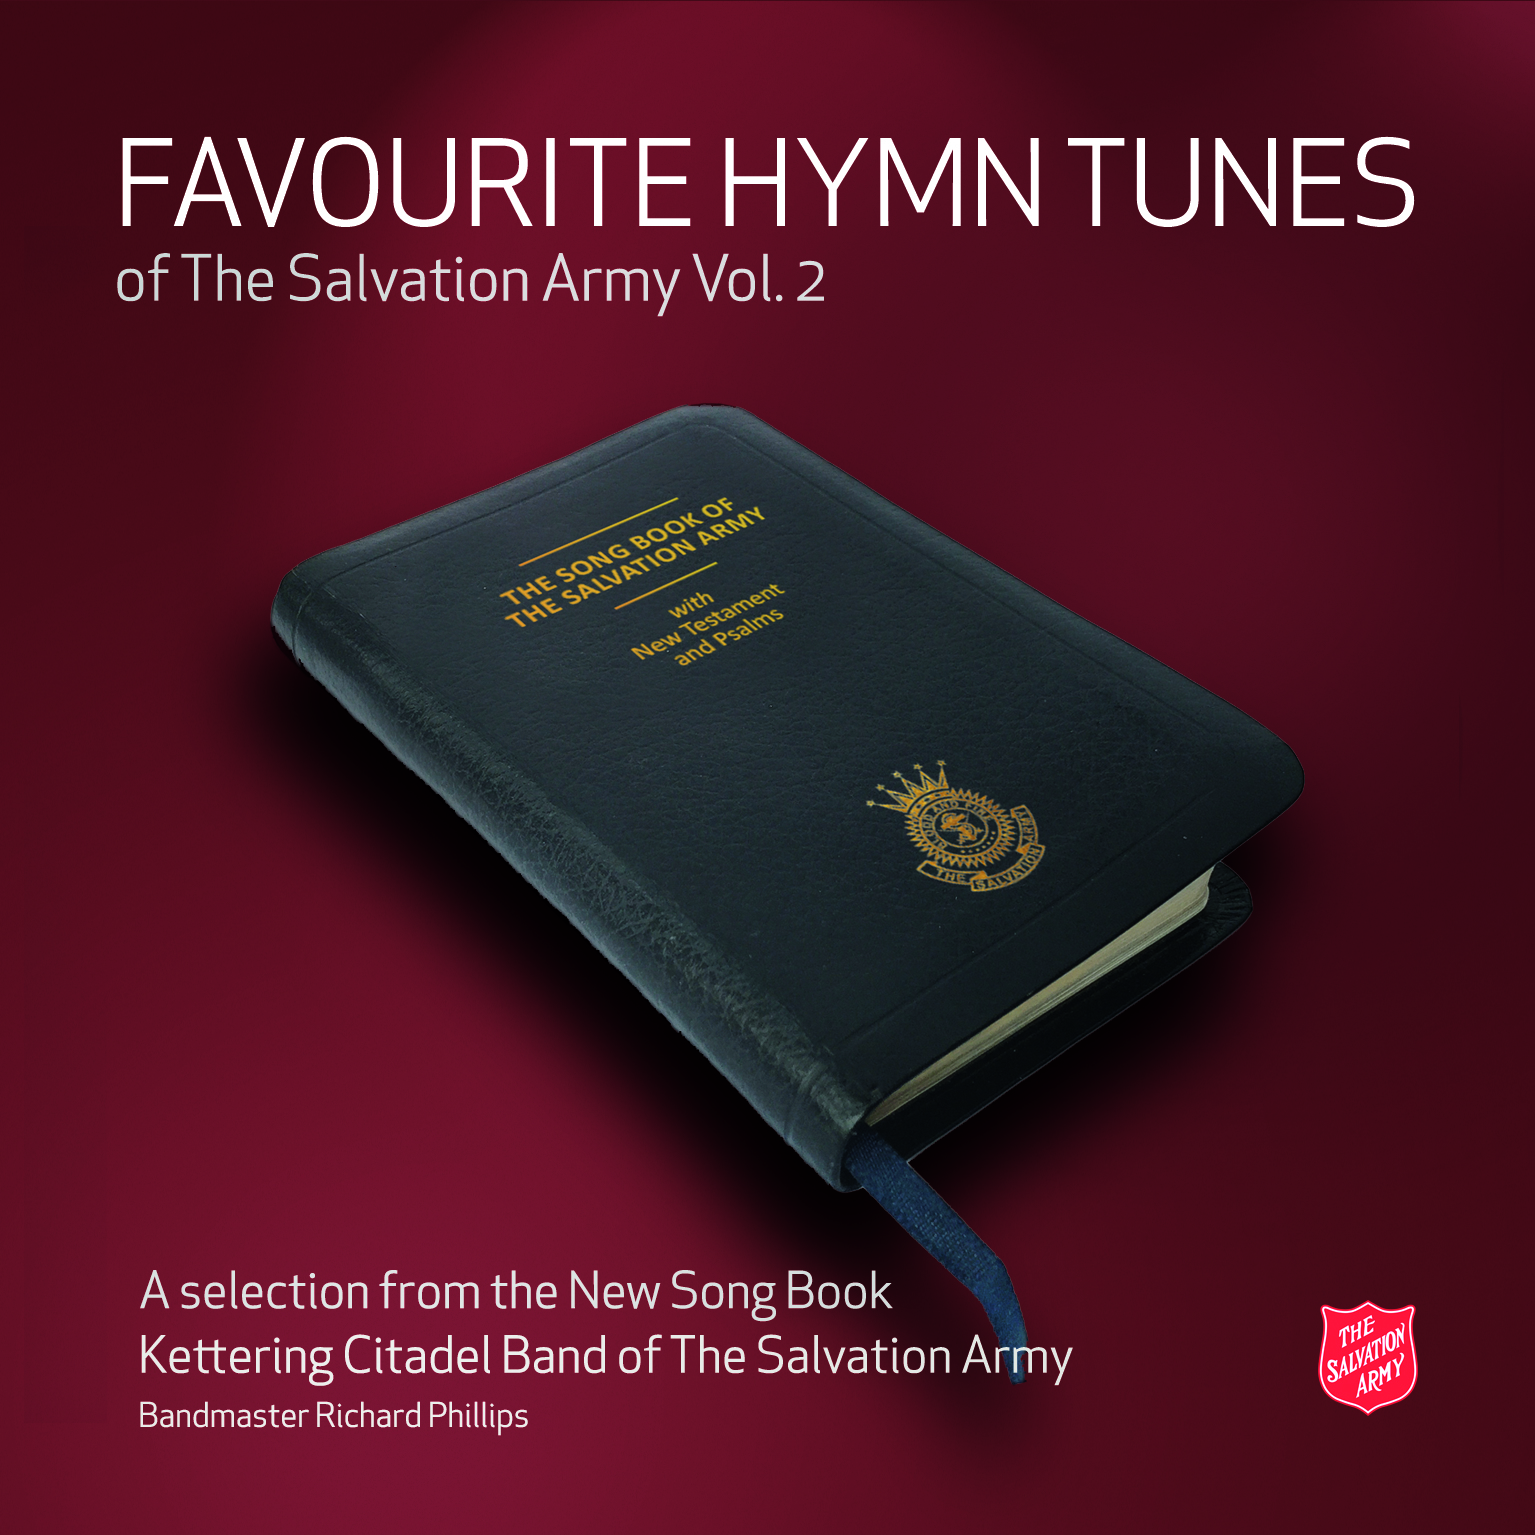 Favourite Hymn Tunes of The Salvation Army Vol. 2 - Download